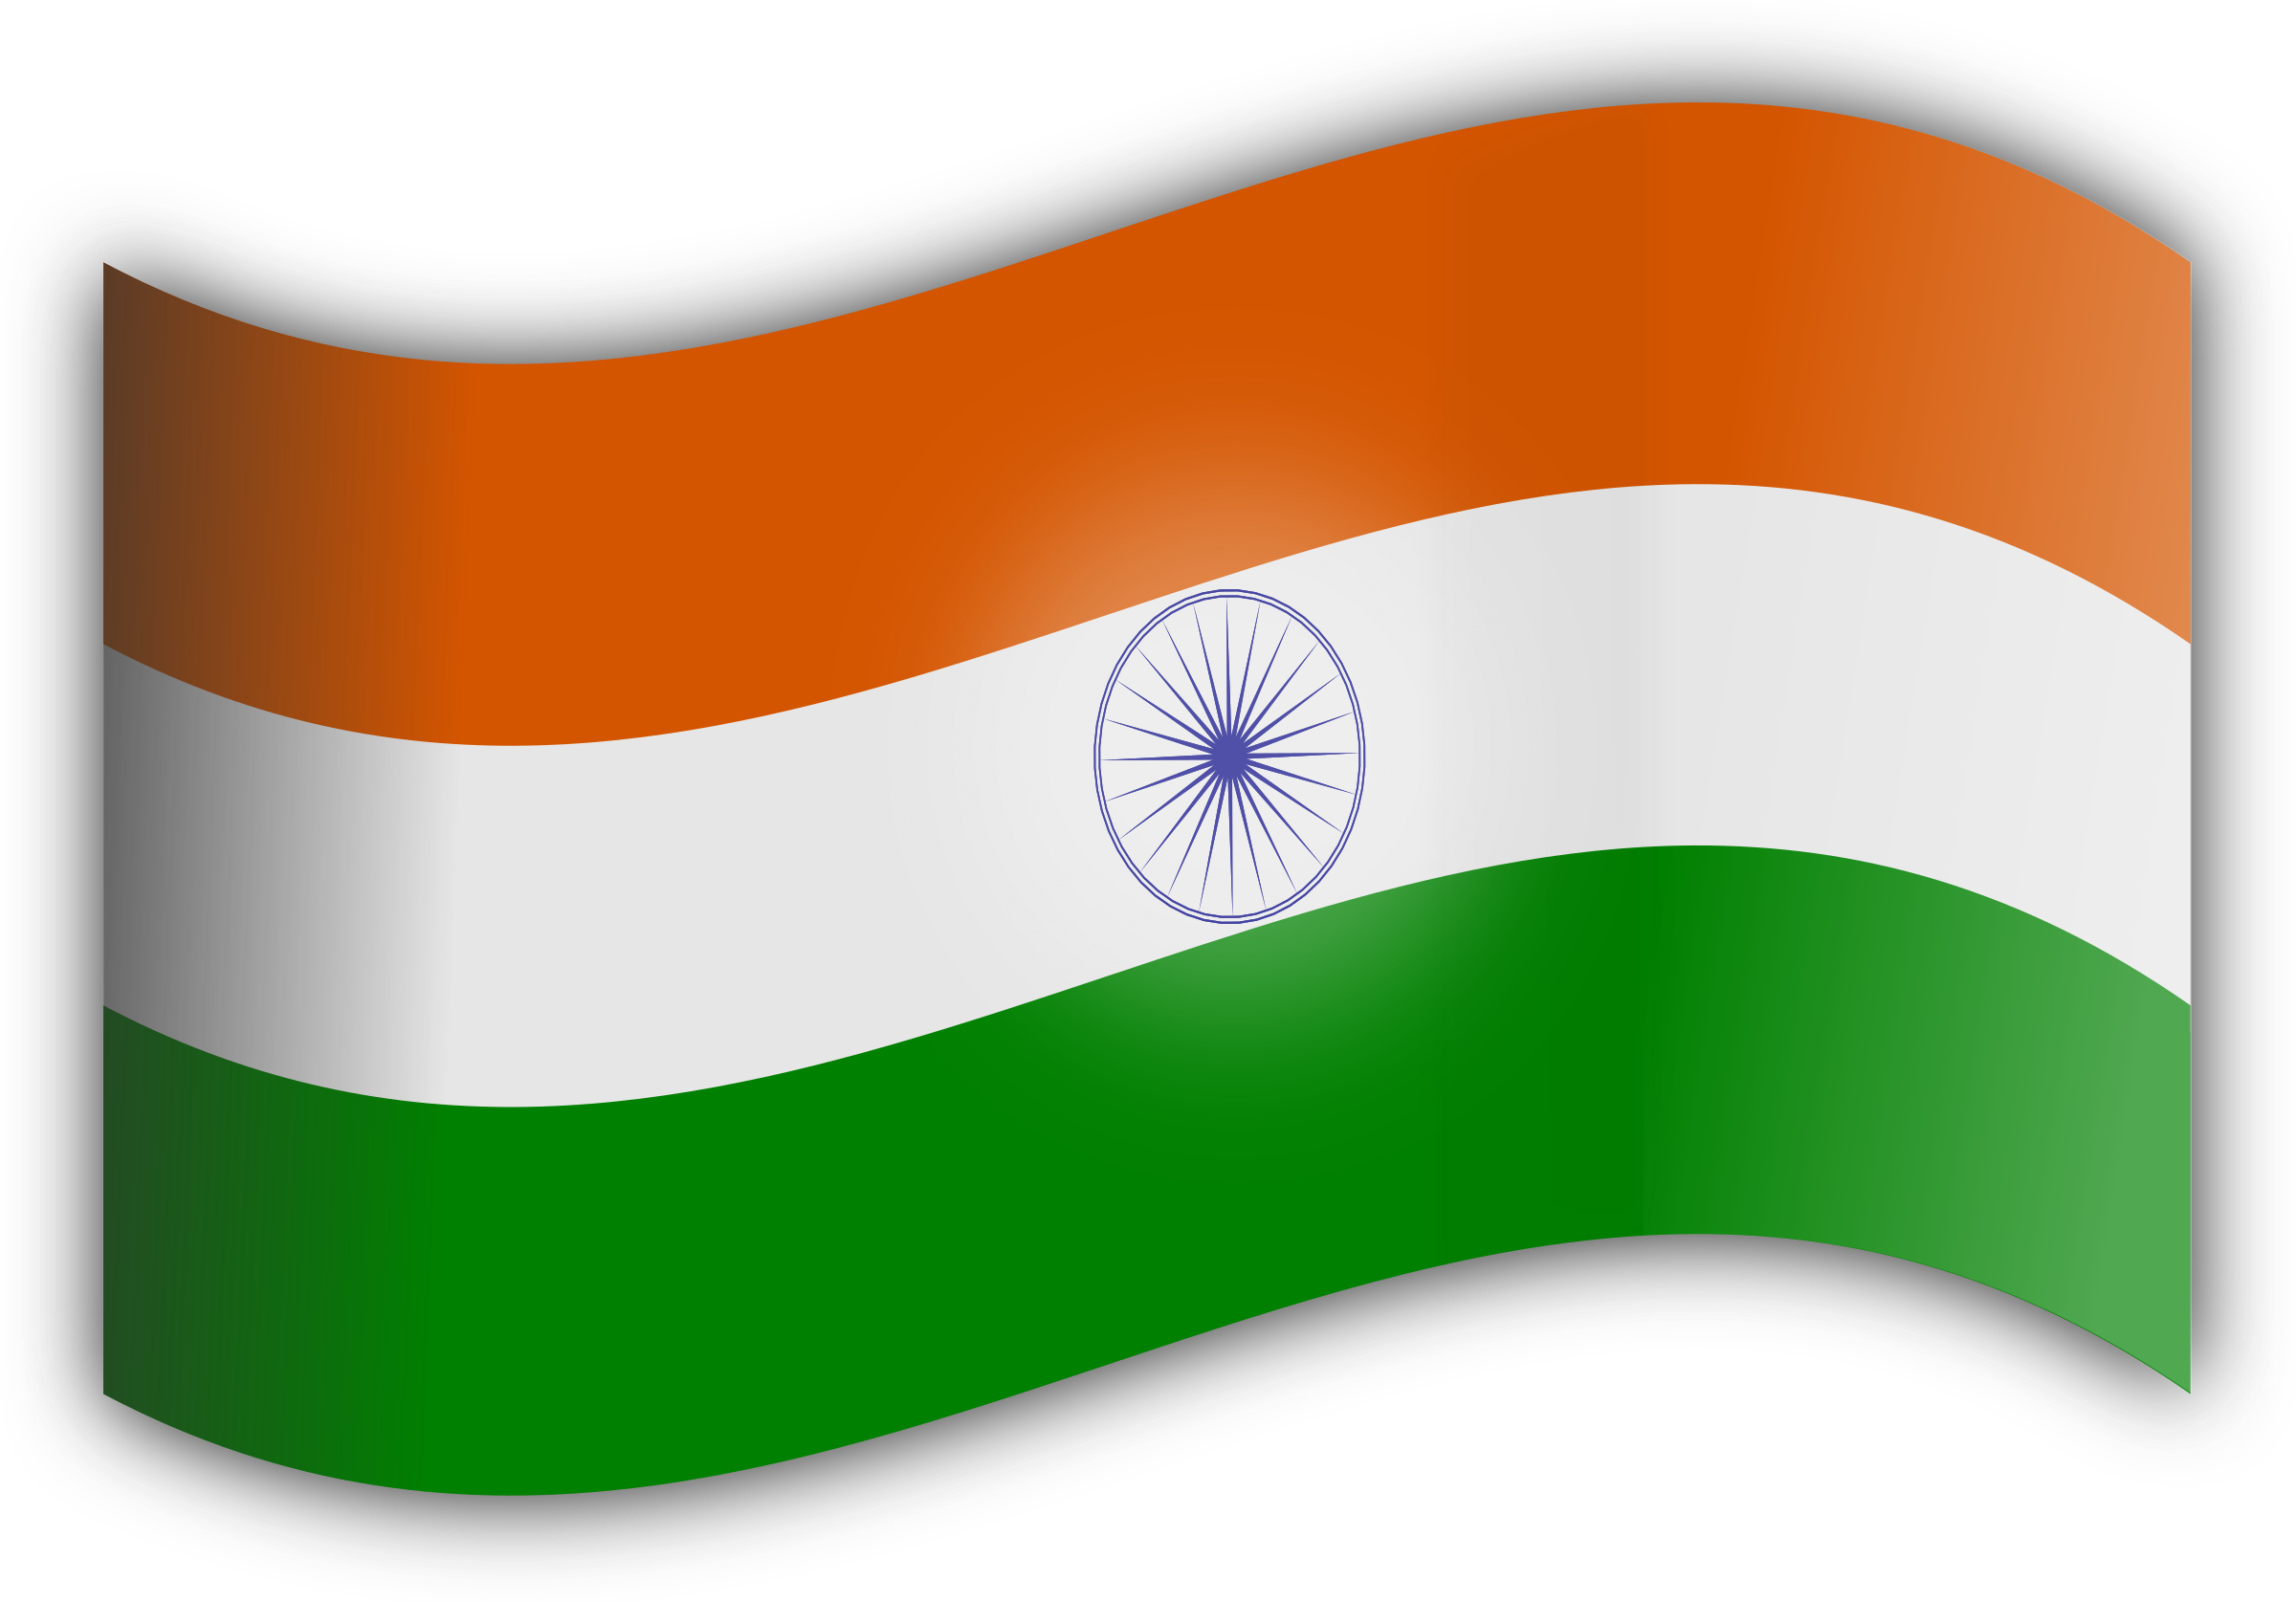 Wheel clipart flag indian. Png transparent free images